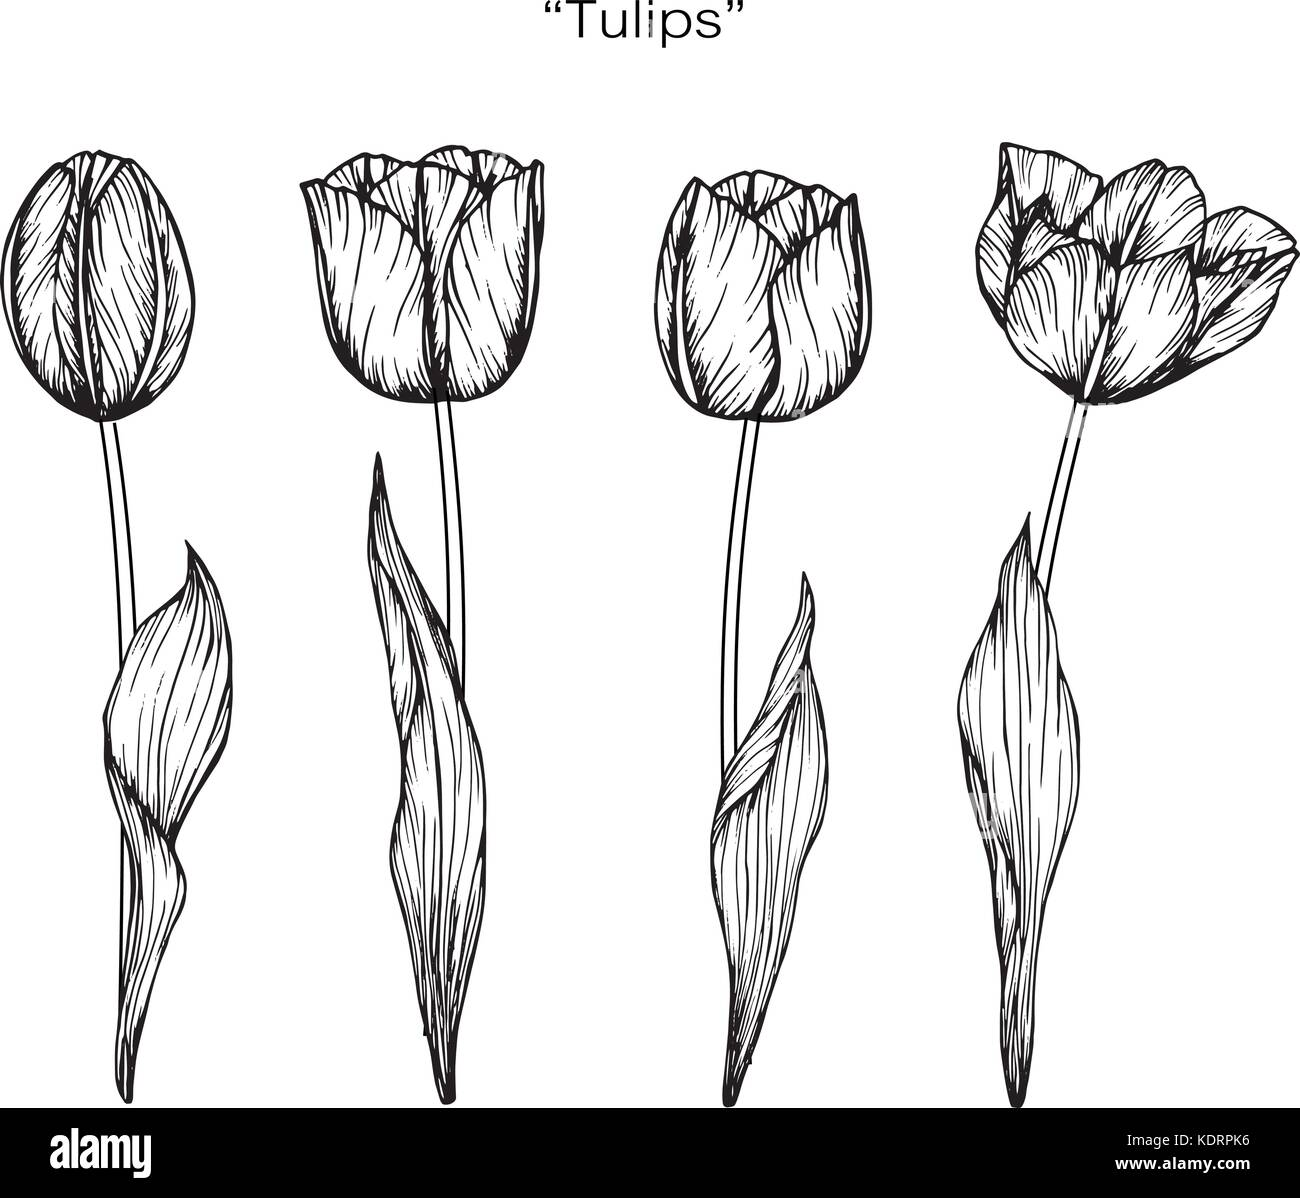 Tulip Flower Drawing Illustration Black And White With Line Art